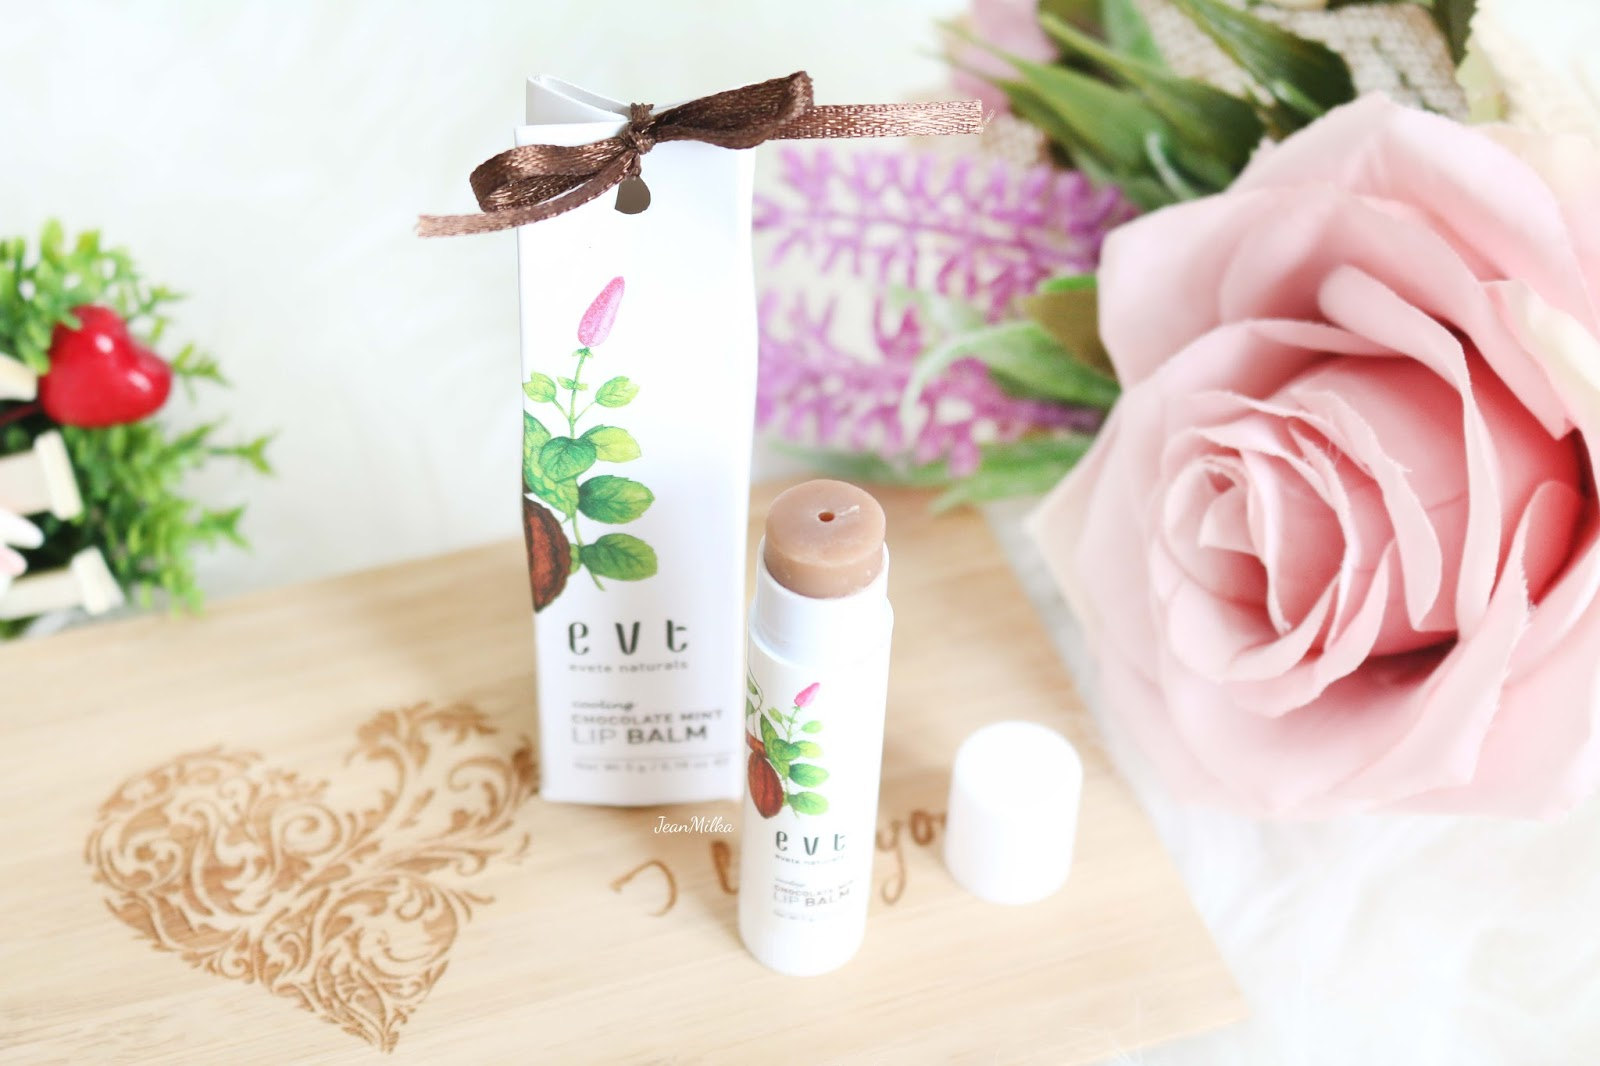 evete, evete naturals, skincare, body lotion, body butter, review evete, produk indonesia, body care, evt, review evete naturals